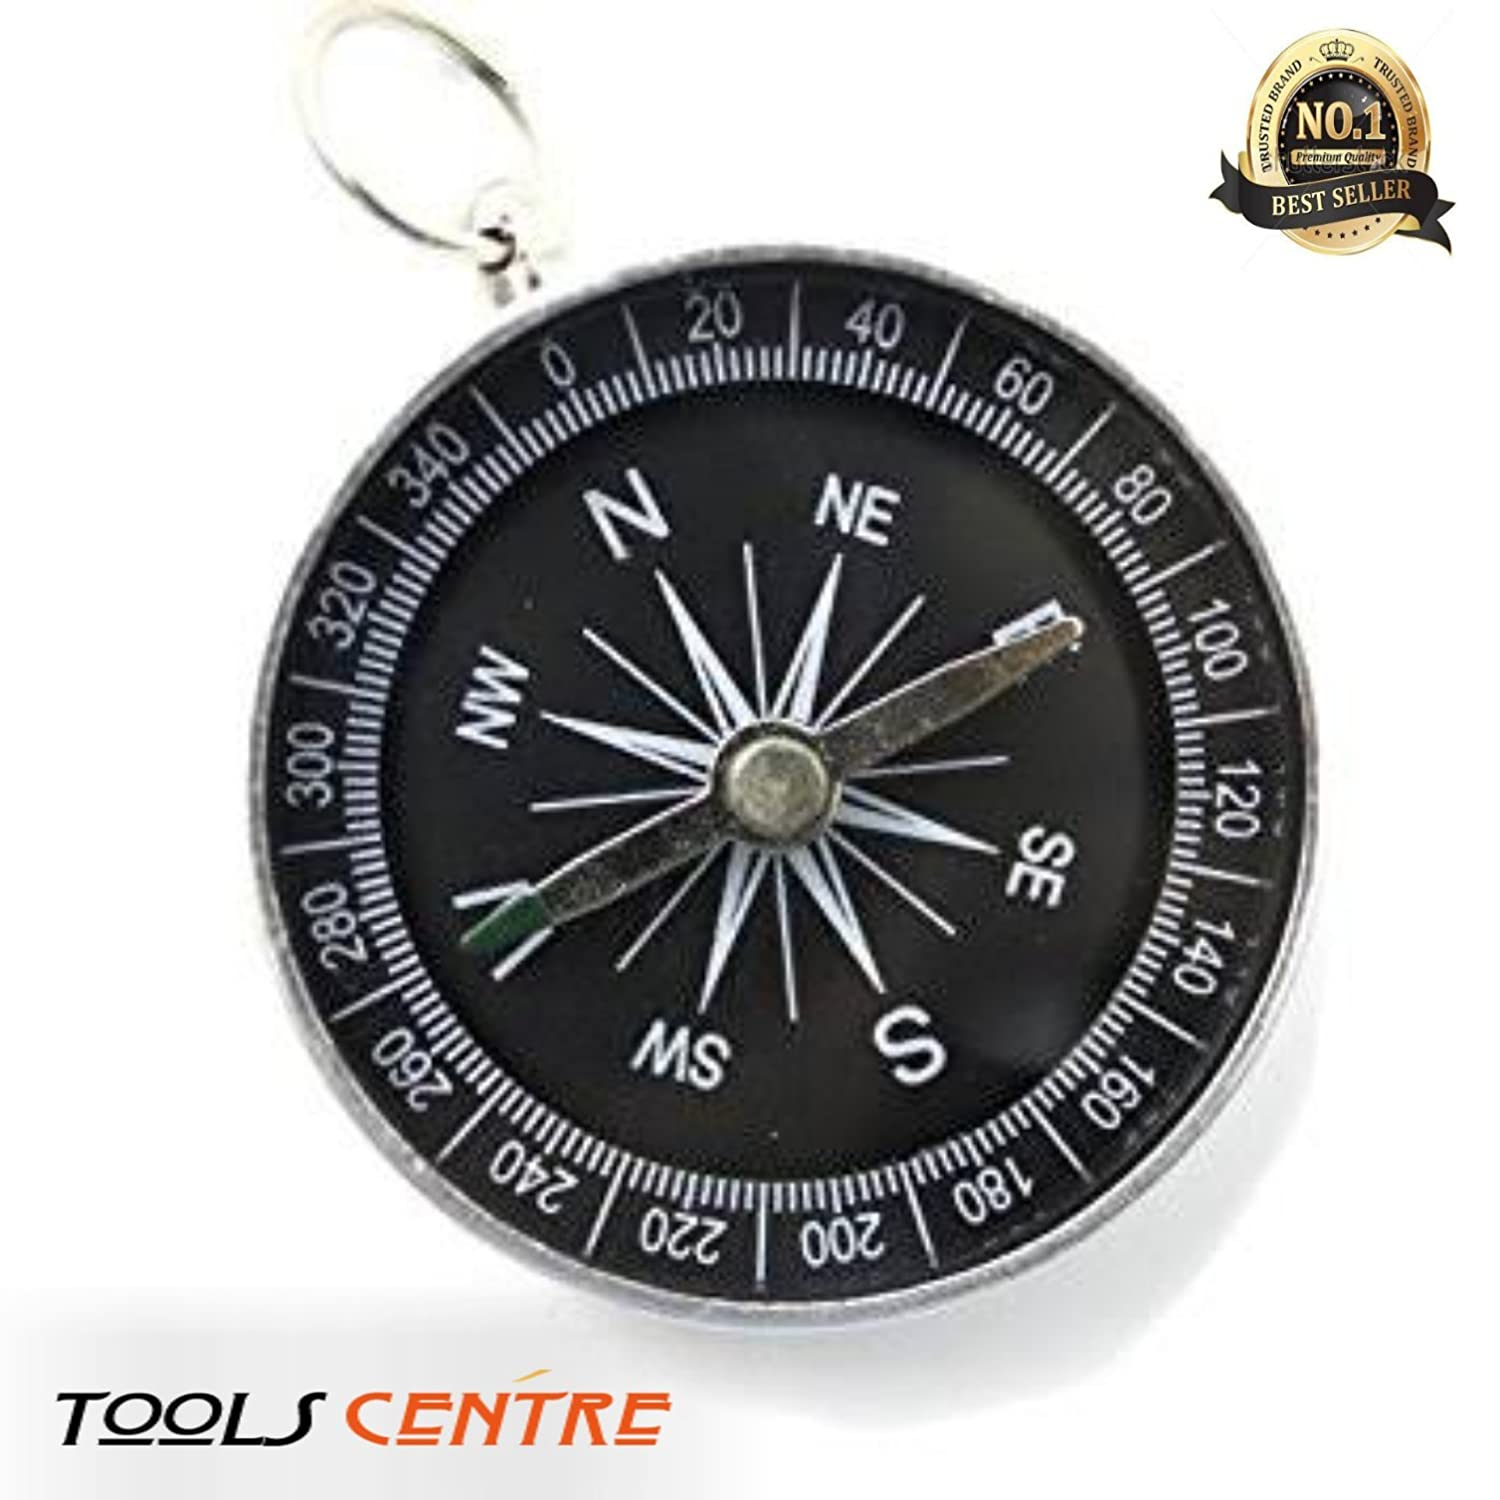 Tools Centre Lightweight Aluminum Camping travel Mini Compass Hiking Navigation (1)